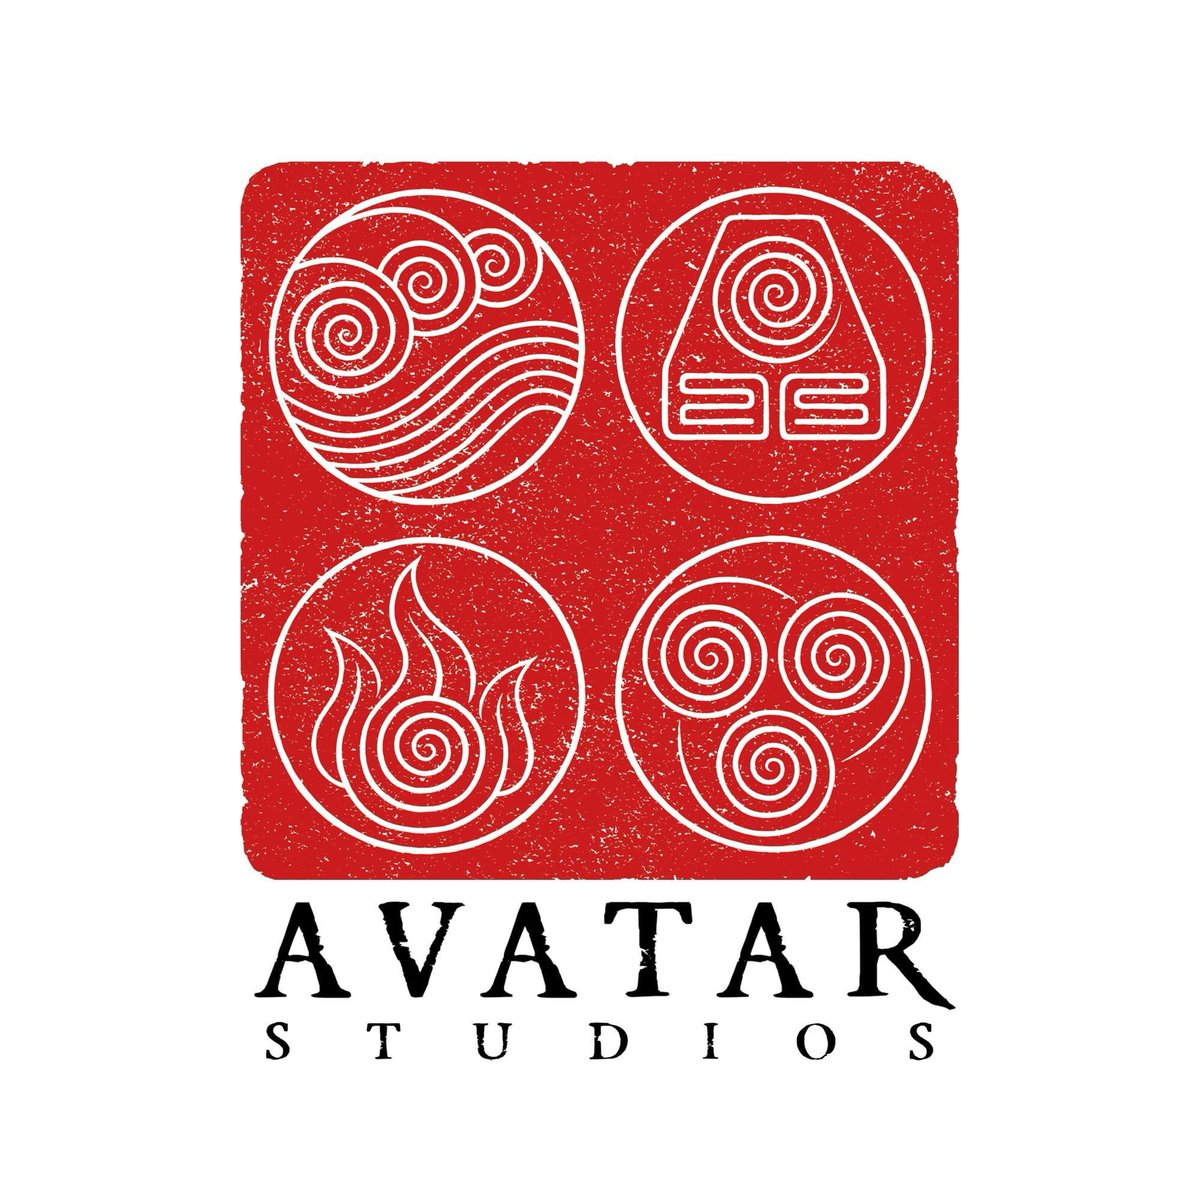 WE'RE GETTING AVATAR STUDIOS OH MY GOD